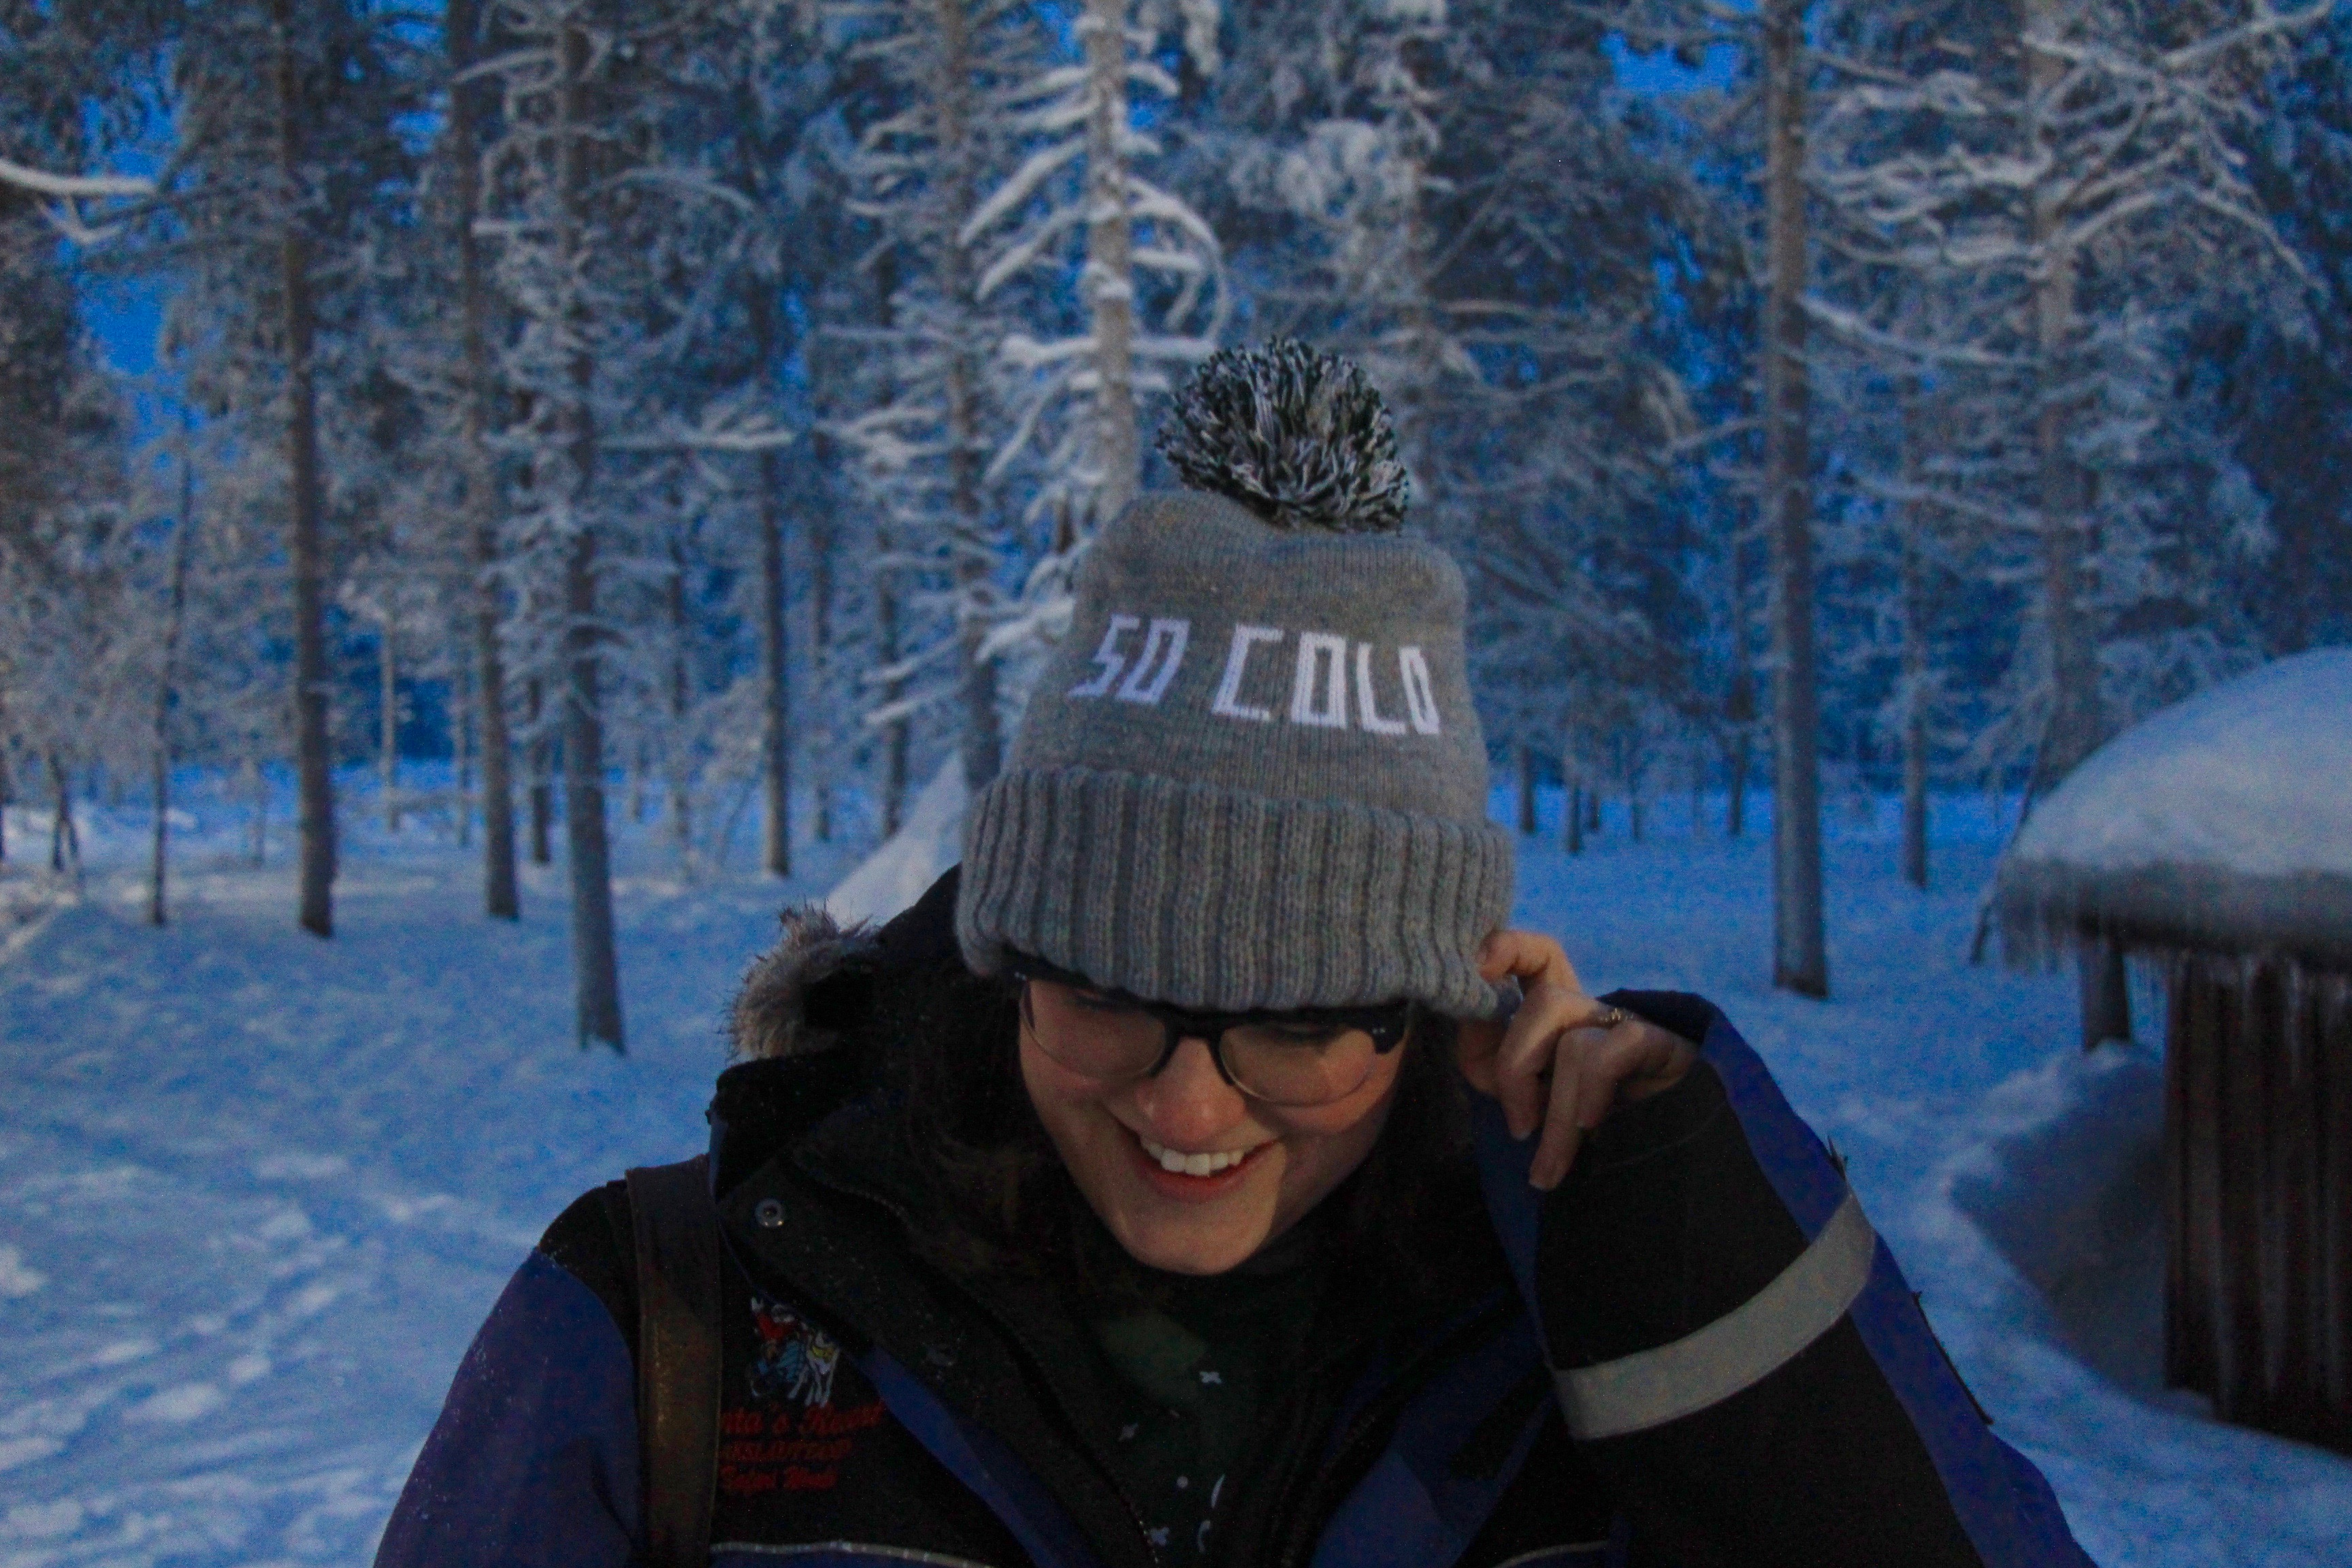 megan hat in lapland finland